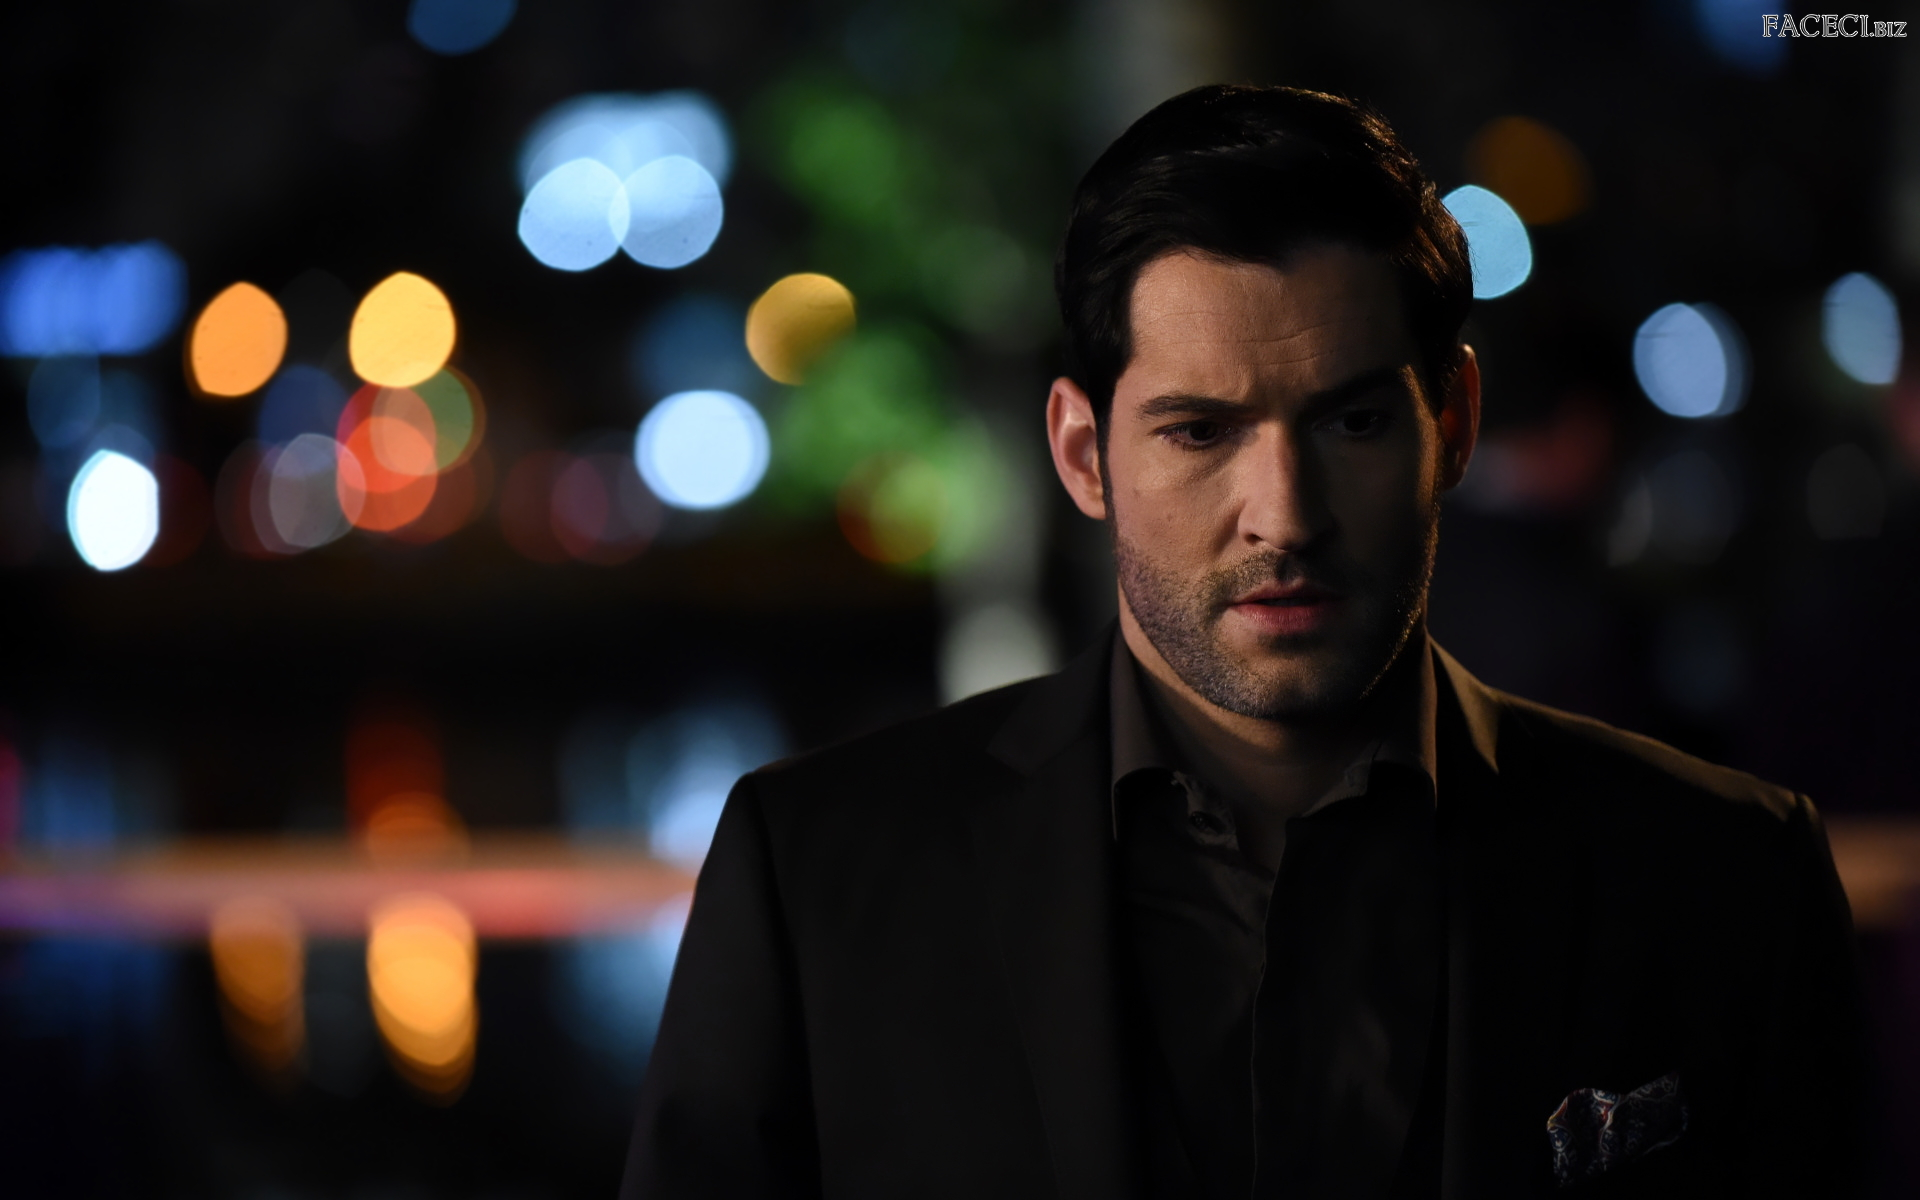 Lucifer Morningstar, Serial, Mężczyzna, Postać, Lucifer, Tom Ellis, Aktor, Lucyfer